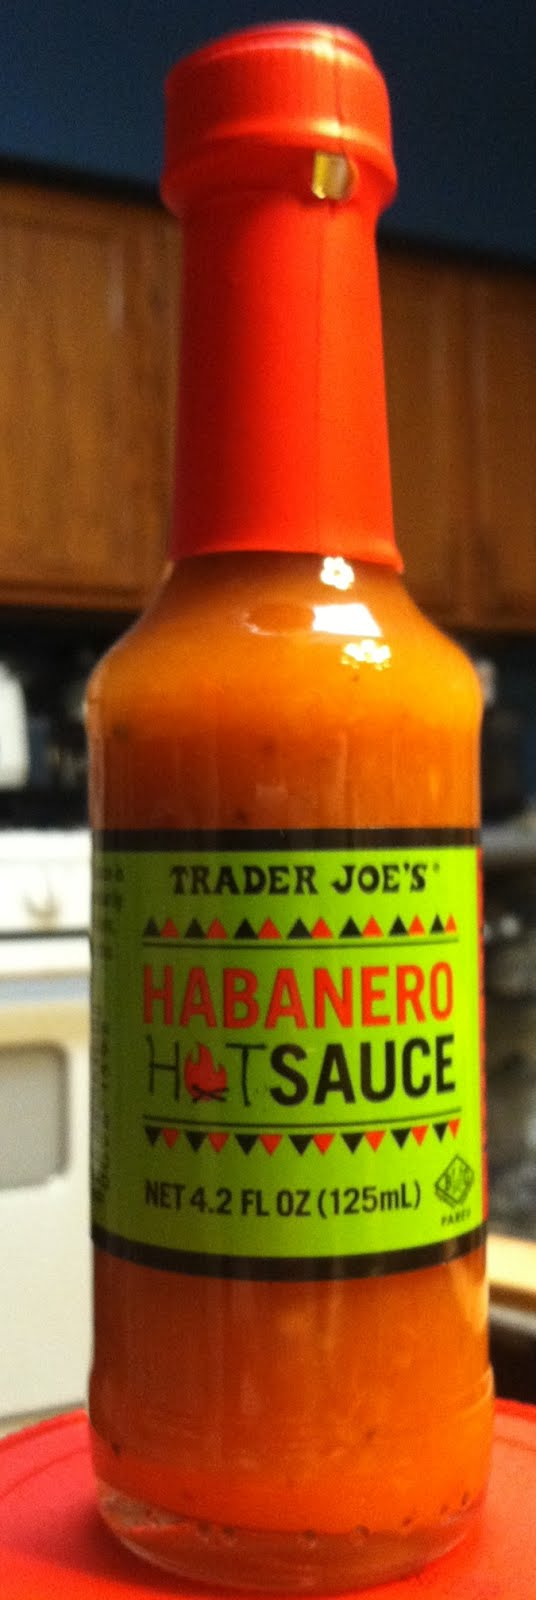 trader joe's habanero hot sauce | OM by UM.com